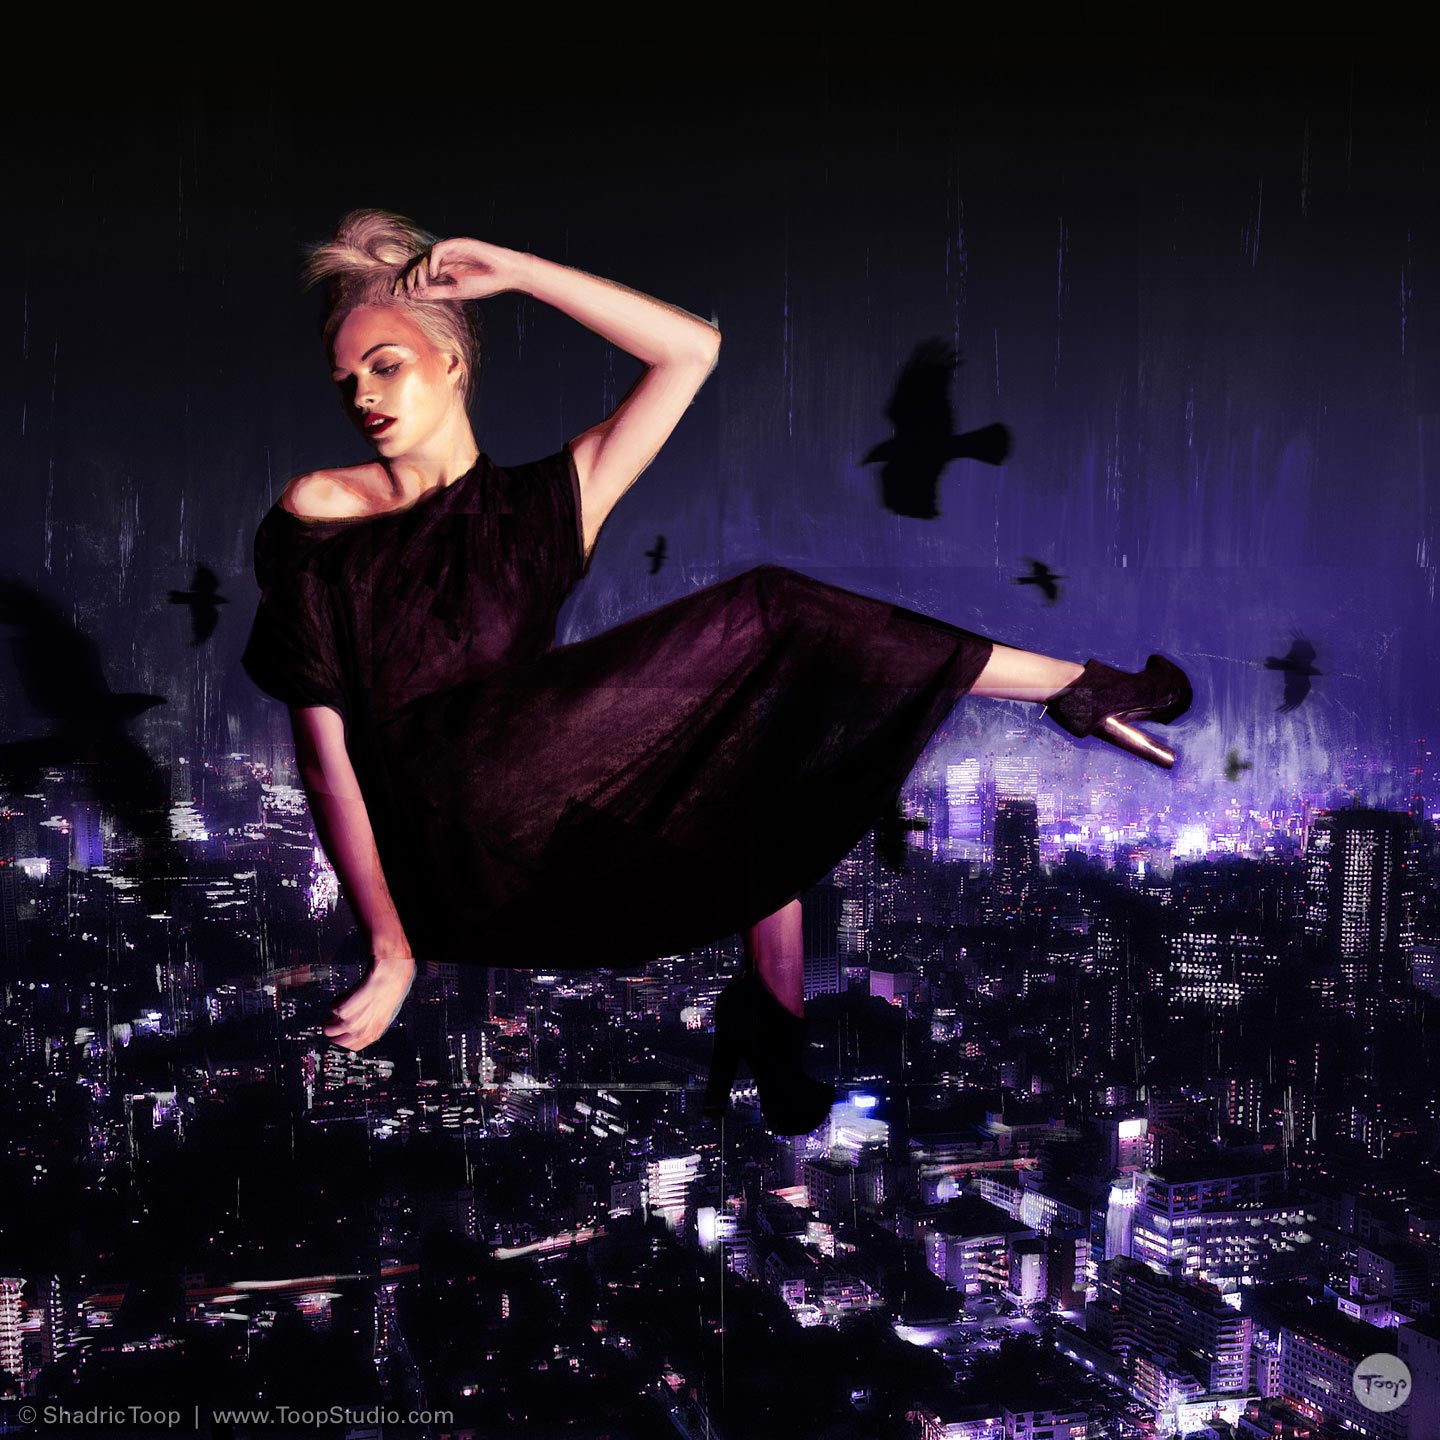 Painted photographic collage of model floating in night sky with city below - Photography Art Direction and illustration by Shadric Toop Brighton